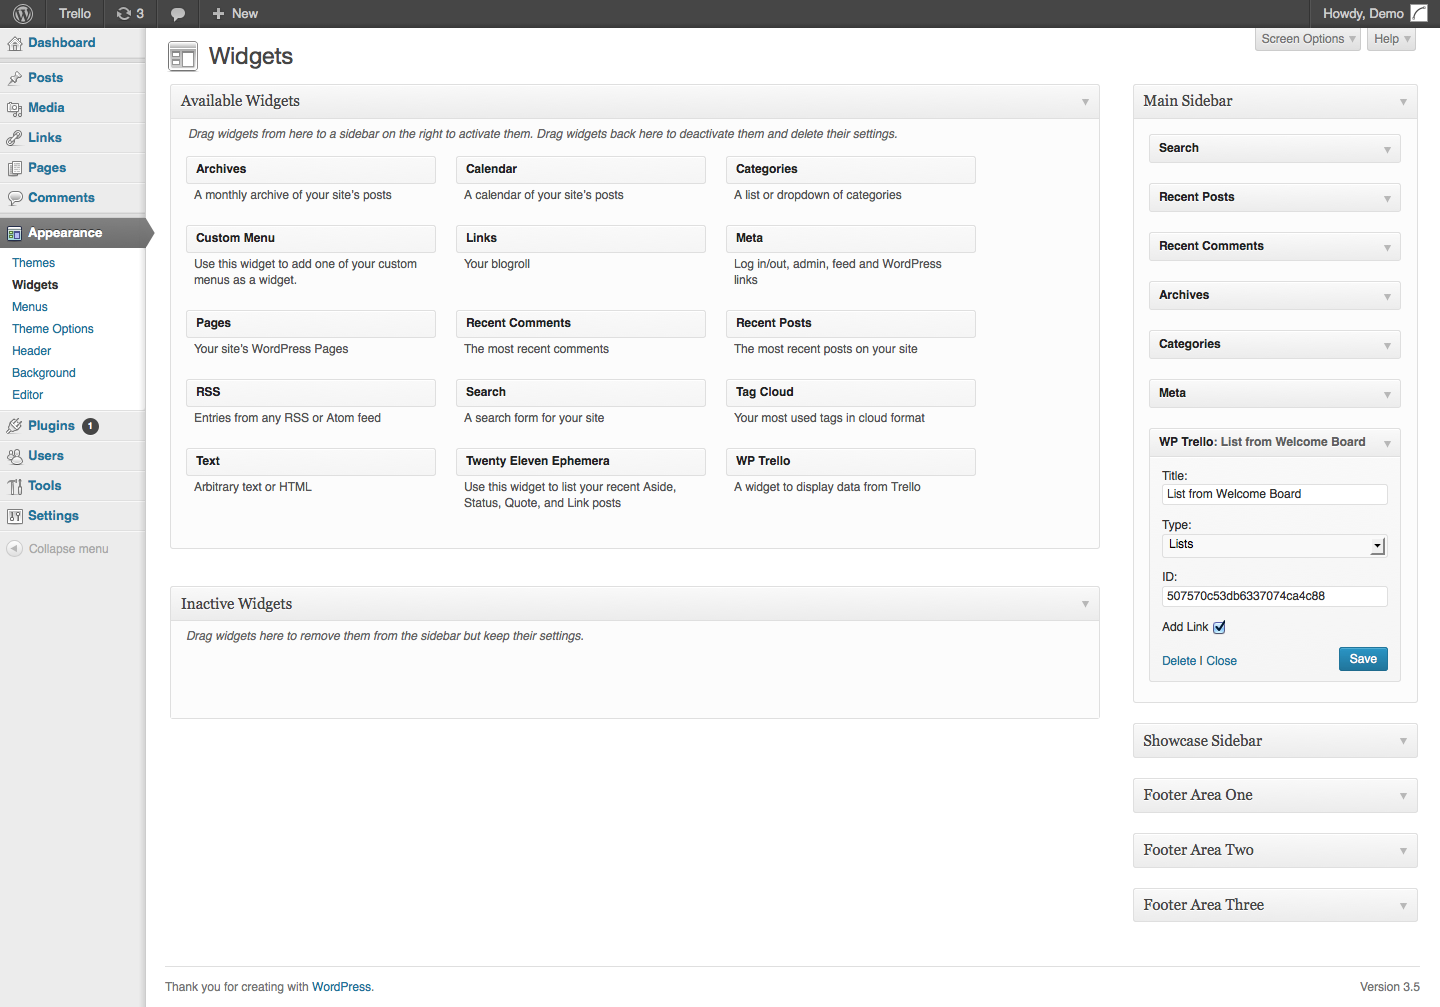 wp-trello screenshot 3